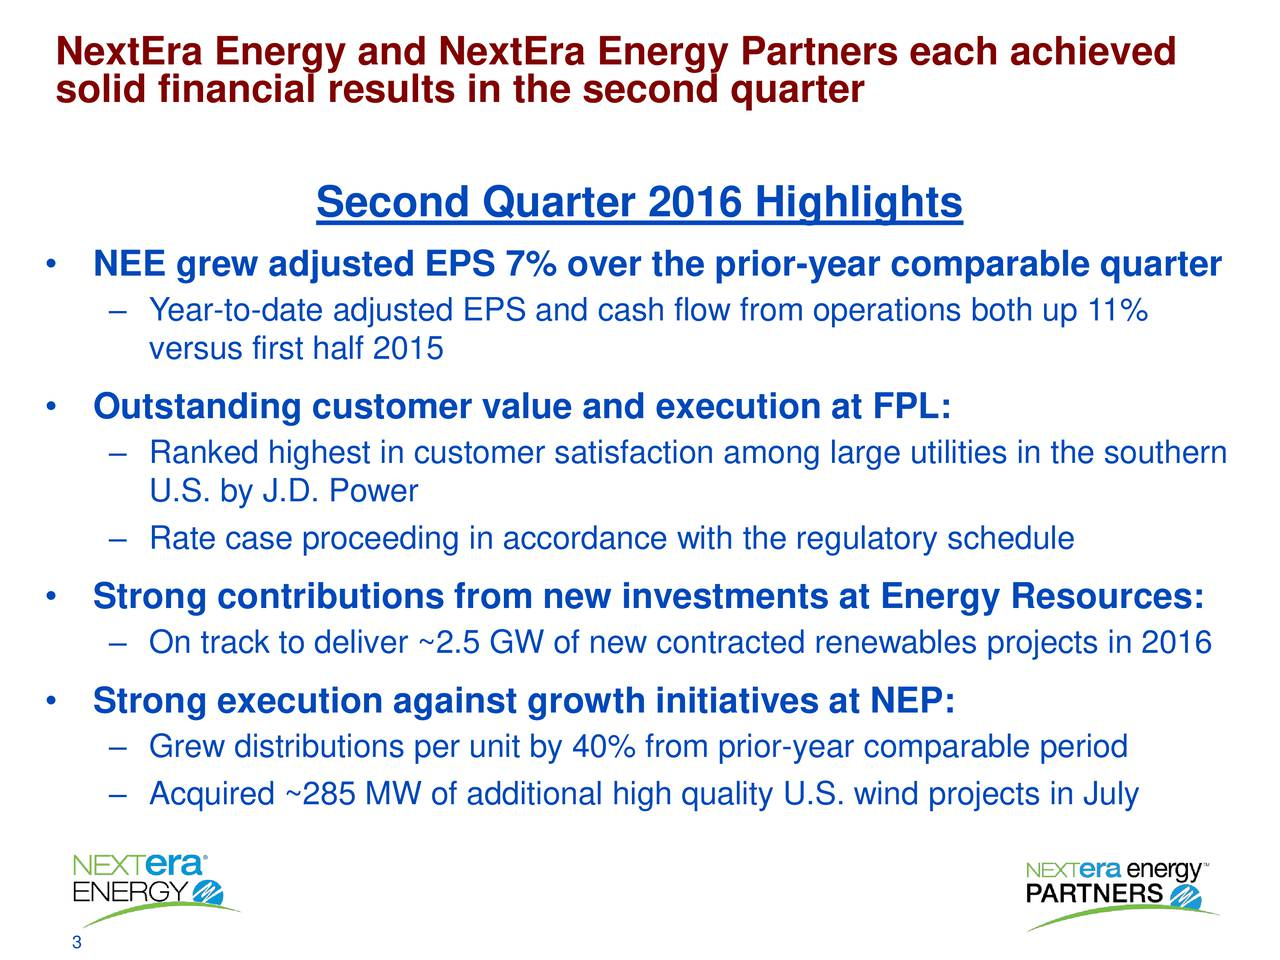 solid financial results in the second quarter Second Quarter 2016 Highlights NEE grew adjusted EPS 7% over the prior-year comparable quarter Year-to-date adjusted EPS and cash flow from operations both up 11% versus first half 2015 Outstanding customer value and execution at FPL: Ranked highest in customer satisfaction among large utilities in the southern U.S. by J.D. Power Rate case proceeding in accordance with the regulatory schedule Strong contributions from new investments at Energy Resources: On track to deliver ~2.5 GW of new contracted renewables projects in 2016 Strong execution against growth initiatives at NEP: Grew distributions per unit by 40% from prior-year comparable period Acquired ~285 MW of additional high quality U.S. wind projects in July